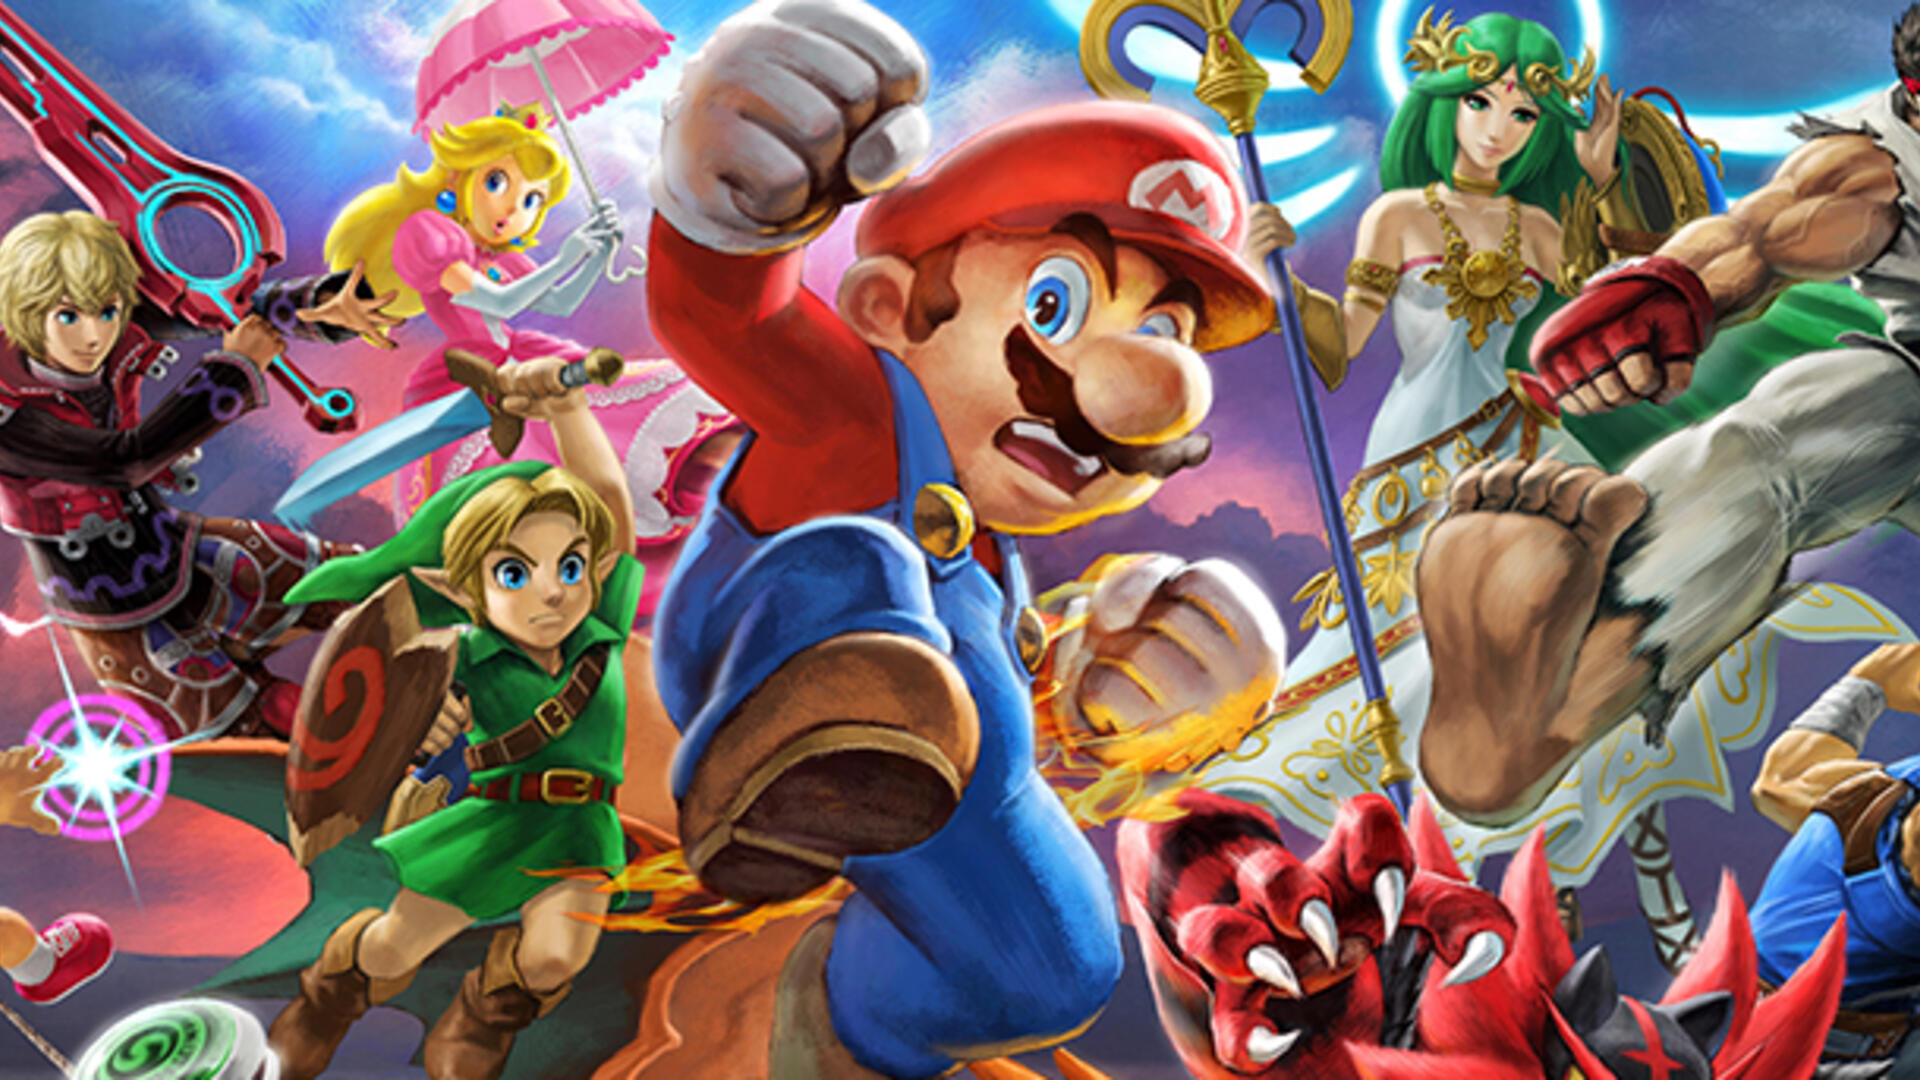 Who's Your Favorite Fighter in Super Smash Bros.?